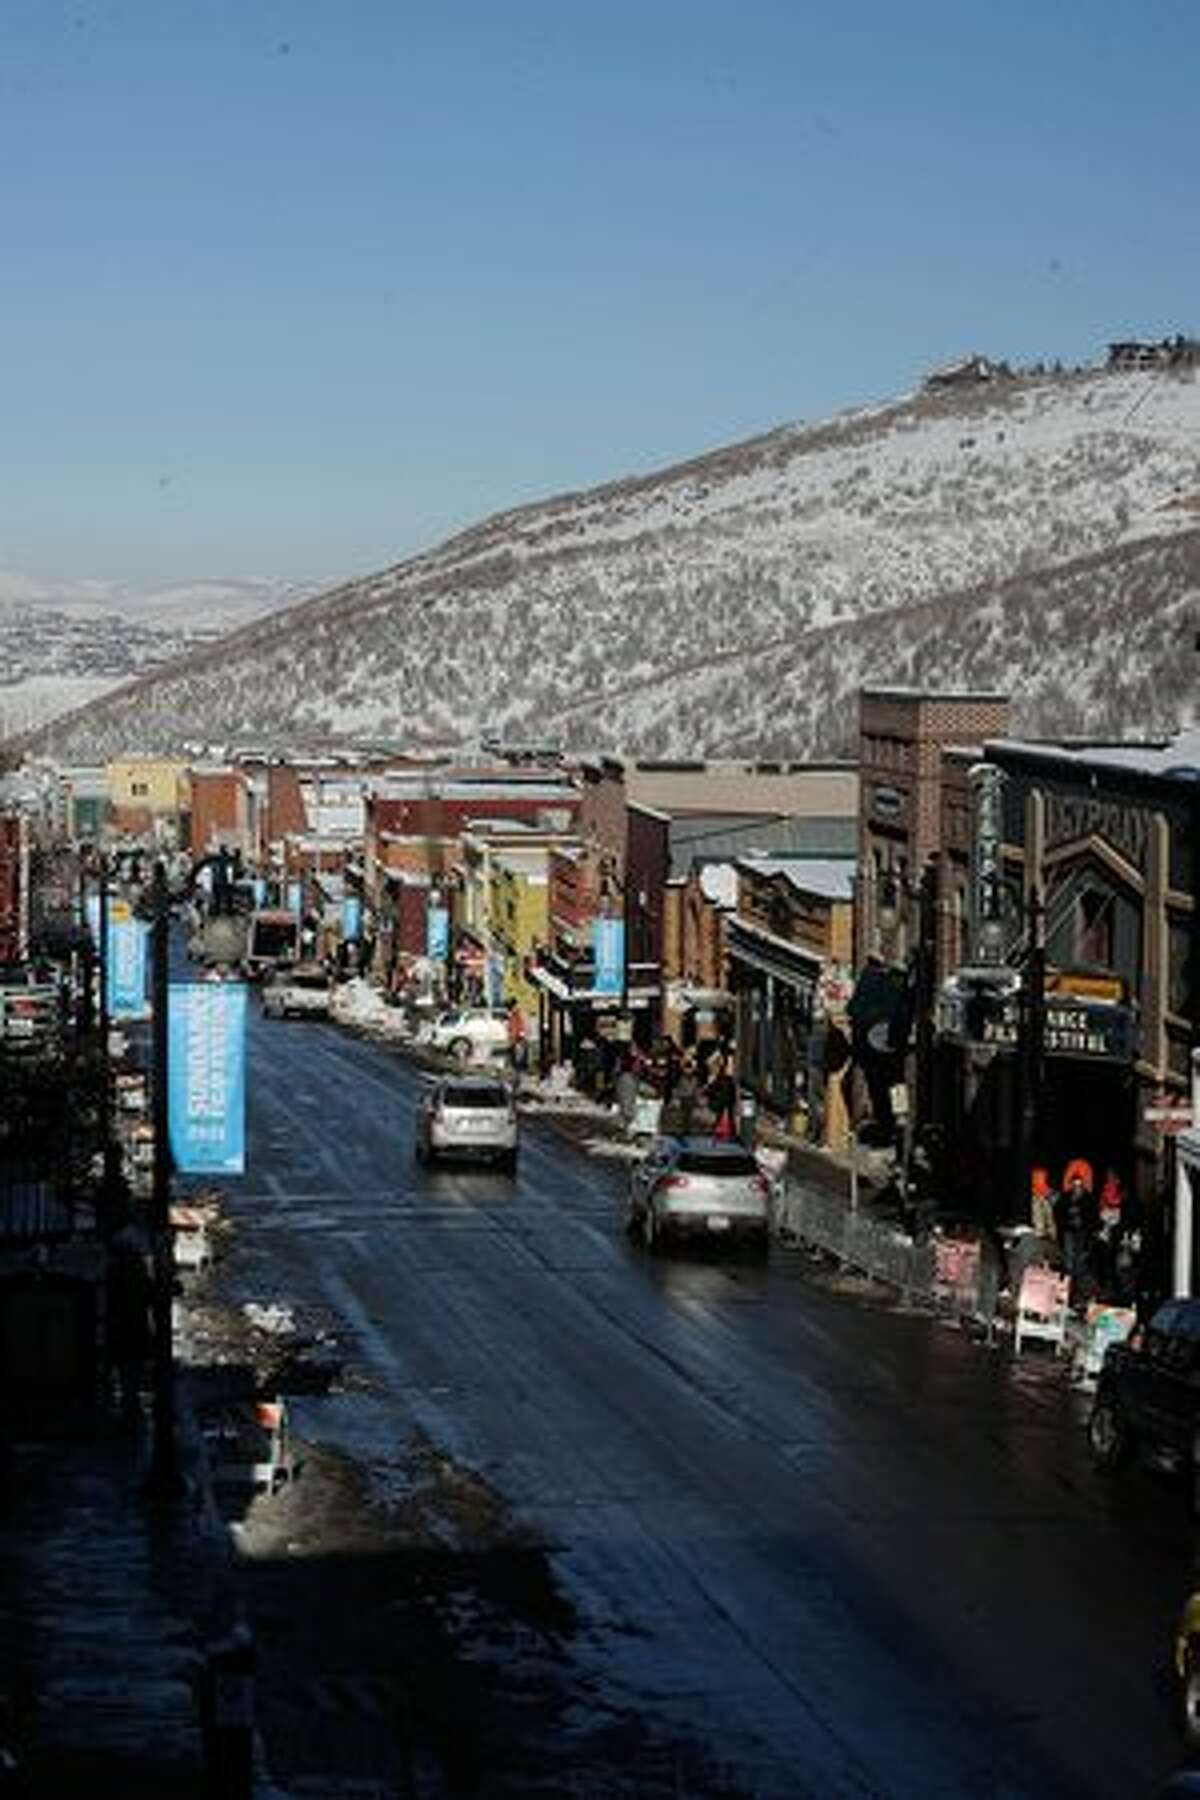 A general view of atmosphere during the 2011 Sundance Film Festival on January 20, 2011 in Park City, Utah.